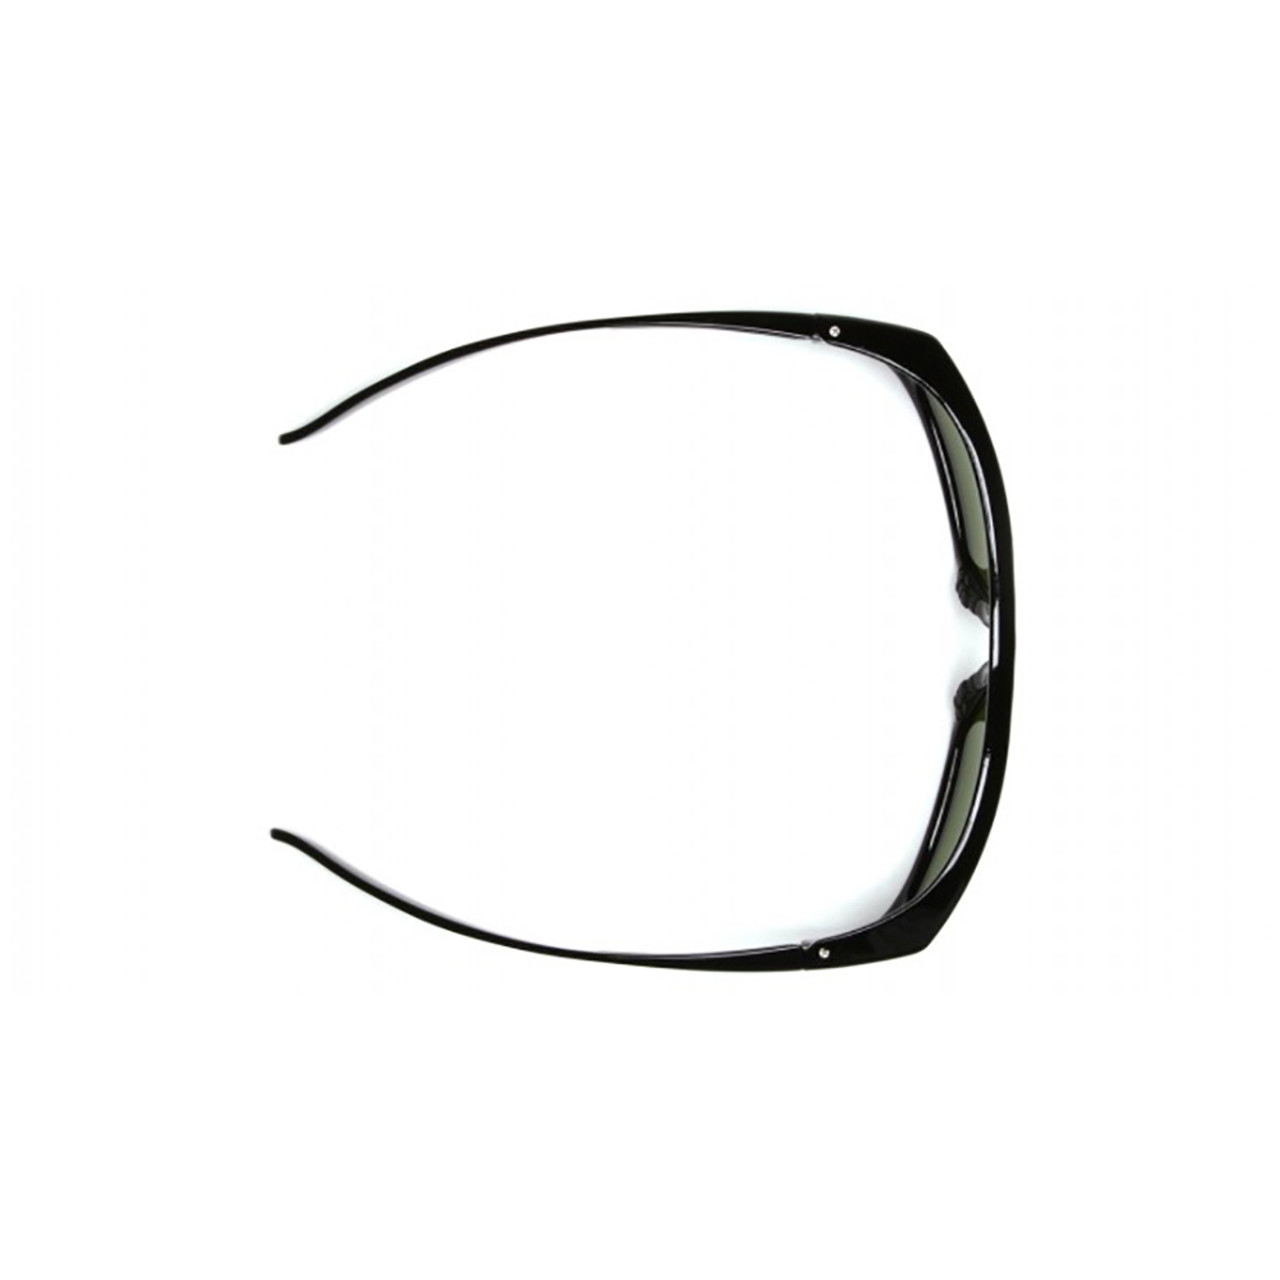 Pyramex Emerge Series Safety Glasses with Clear Lens and Black Frame